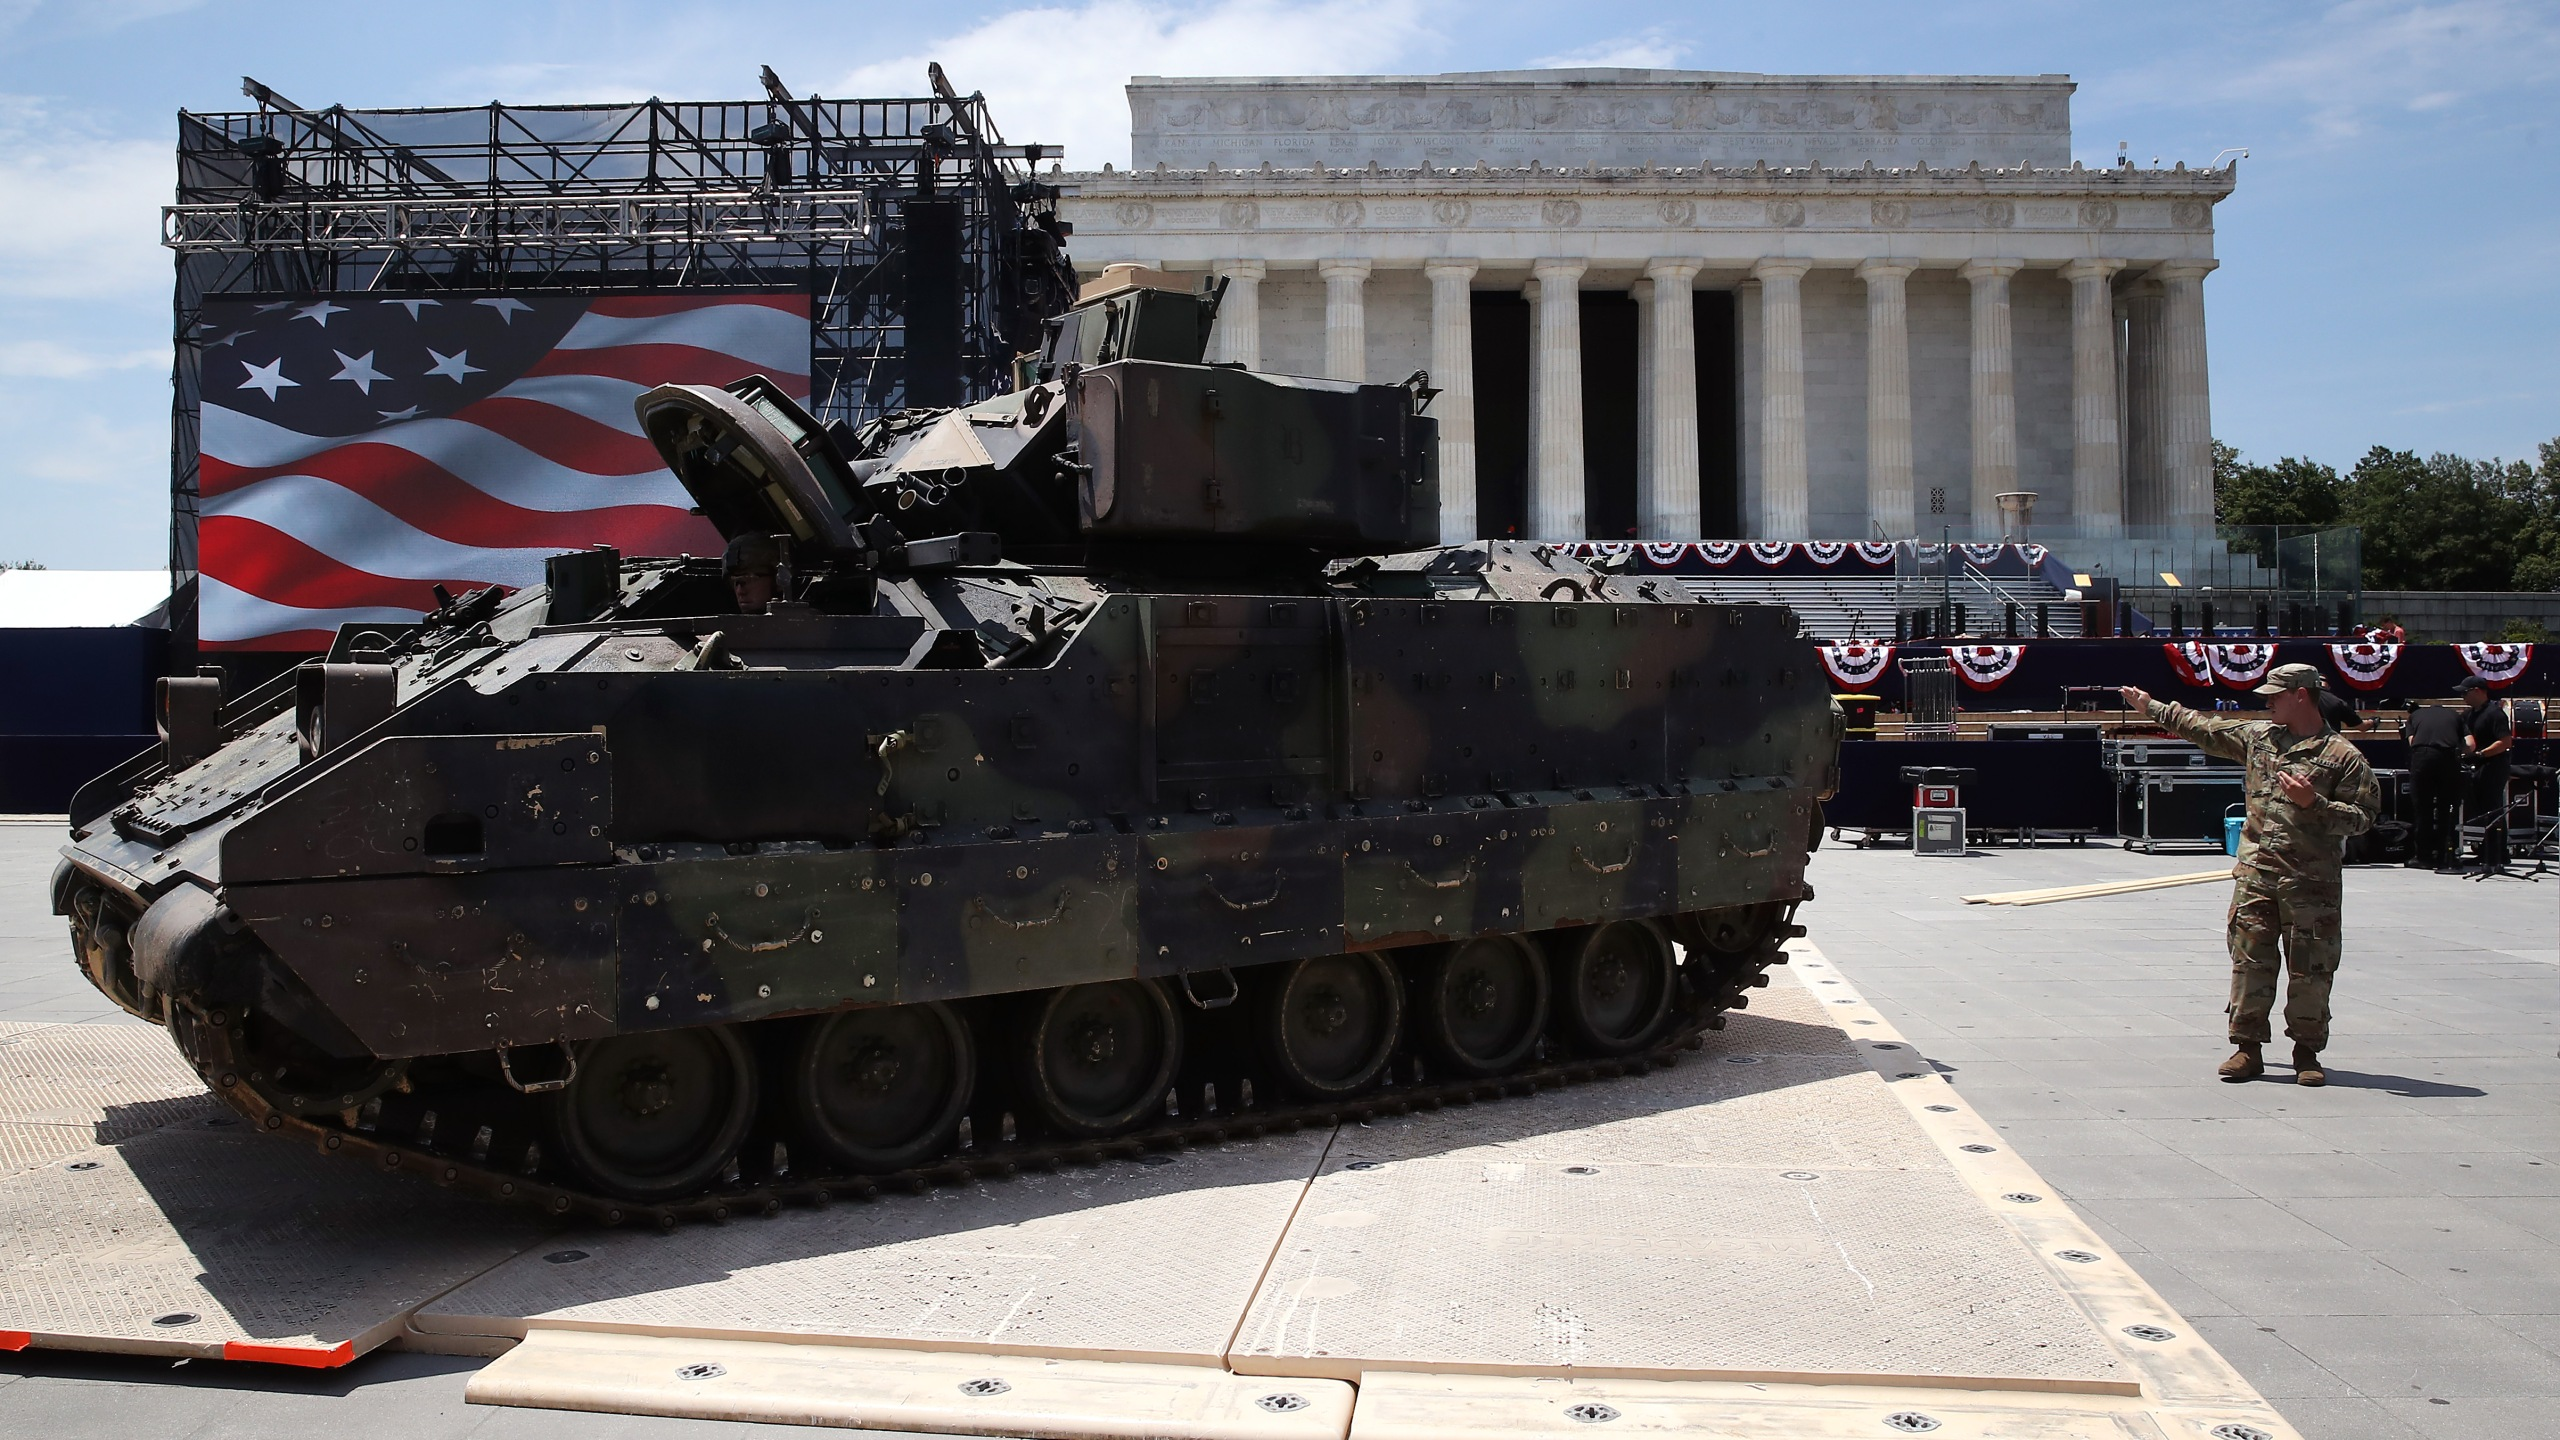 """Members of the U.S. Army park an Bradley fighting vehicle in front of the Lincoln Memorial ahead of the Fourth of July """"Salute to America"""" celebration on July 3, 2019 in Washington, DC. (Credit: Mark Wilson/Getty Images)"""